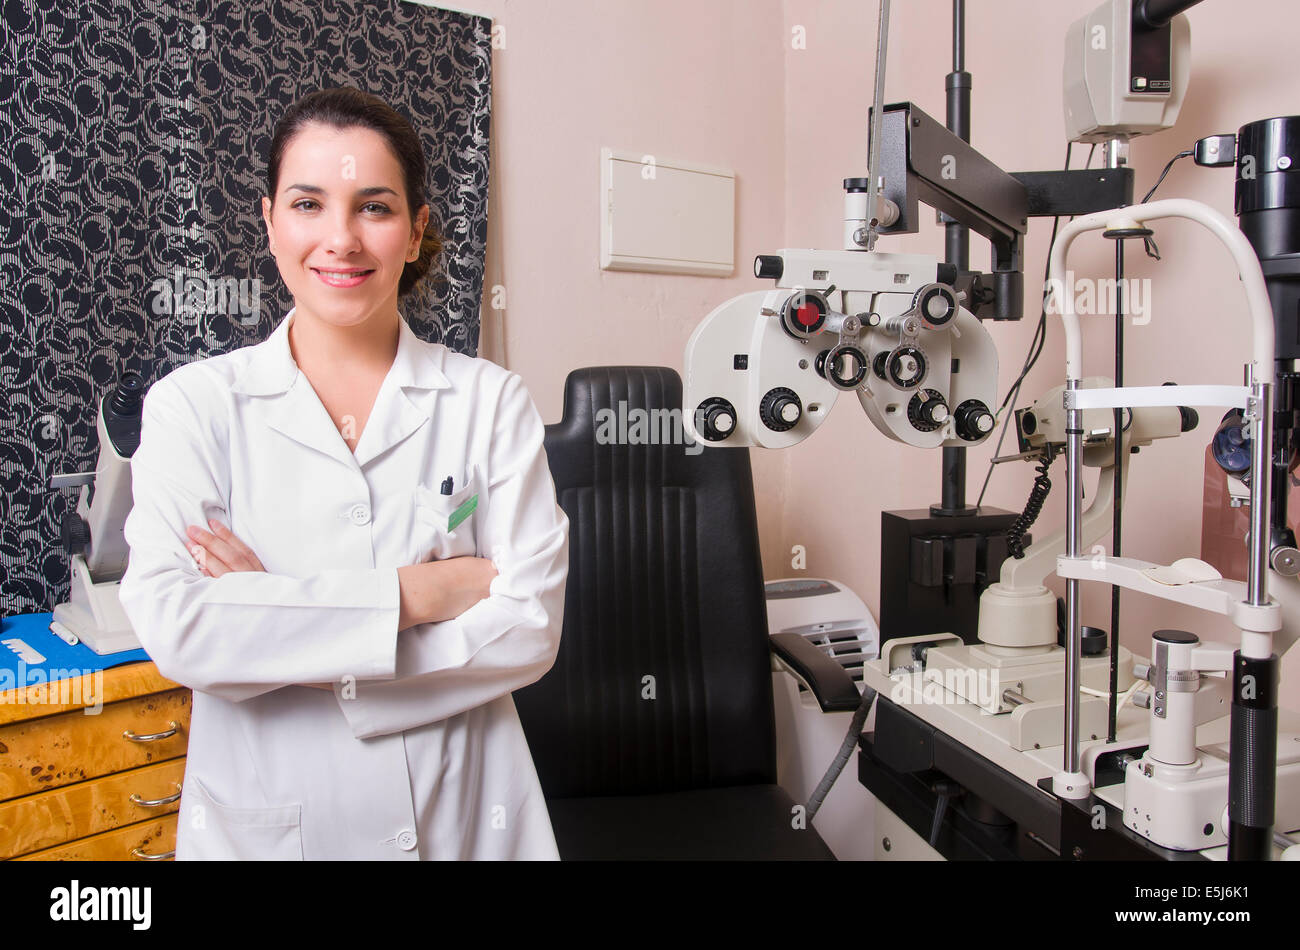 Optometrist chair, ophtalmology diopters calibration in oculist lab of young woman doctor. - Stock Image